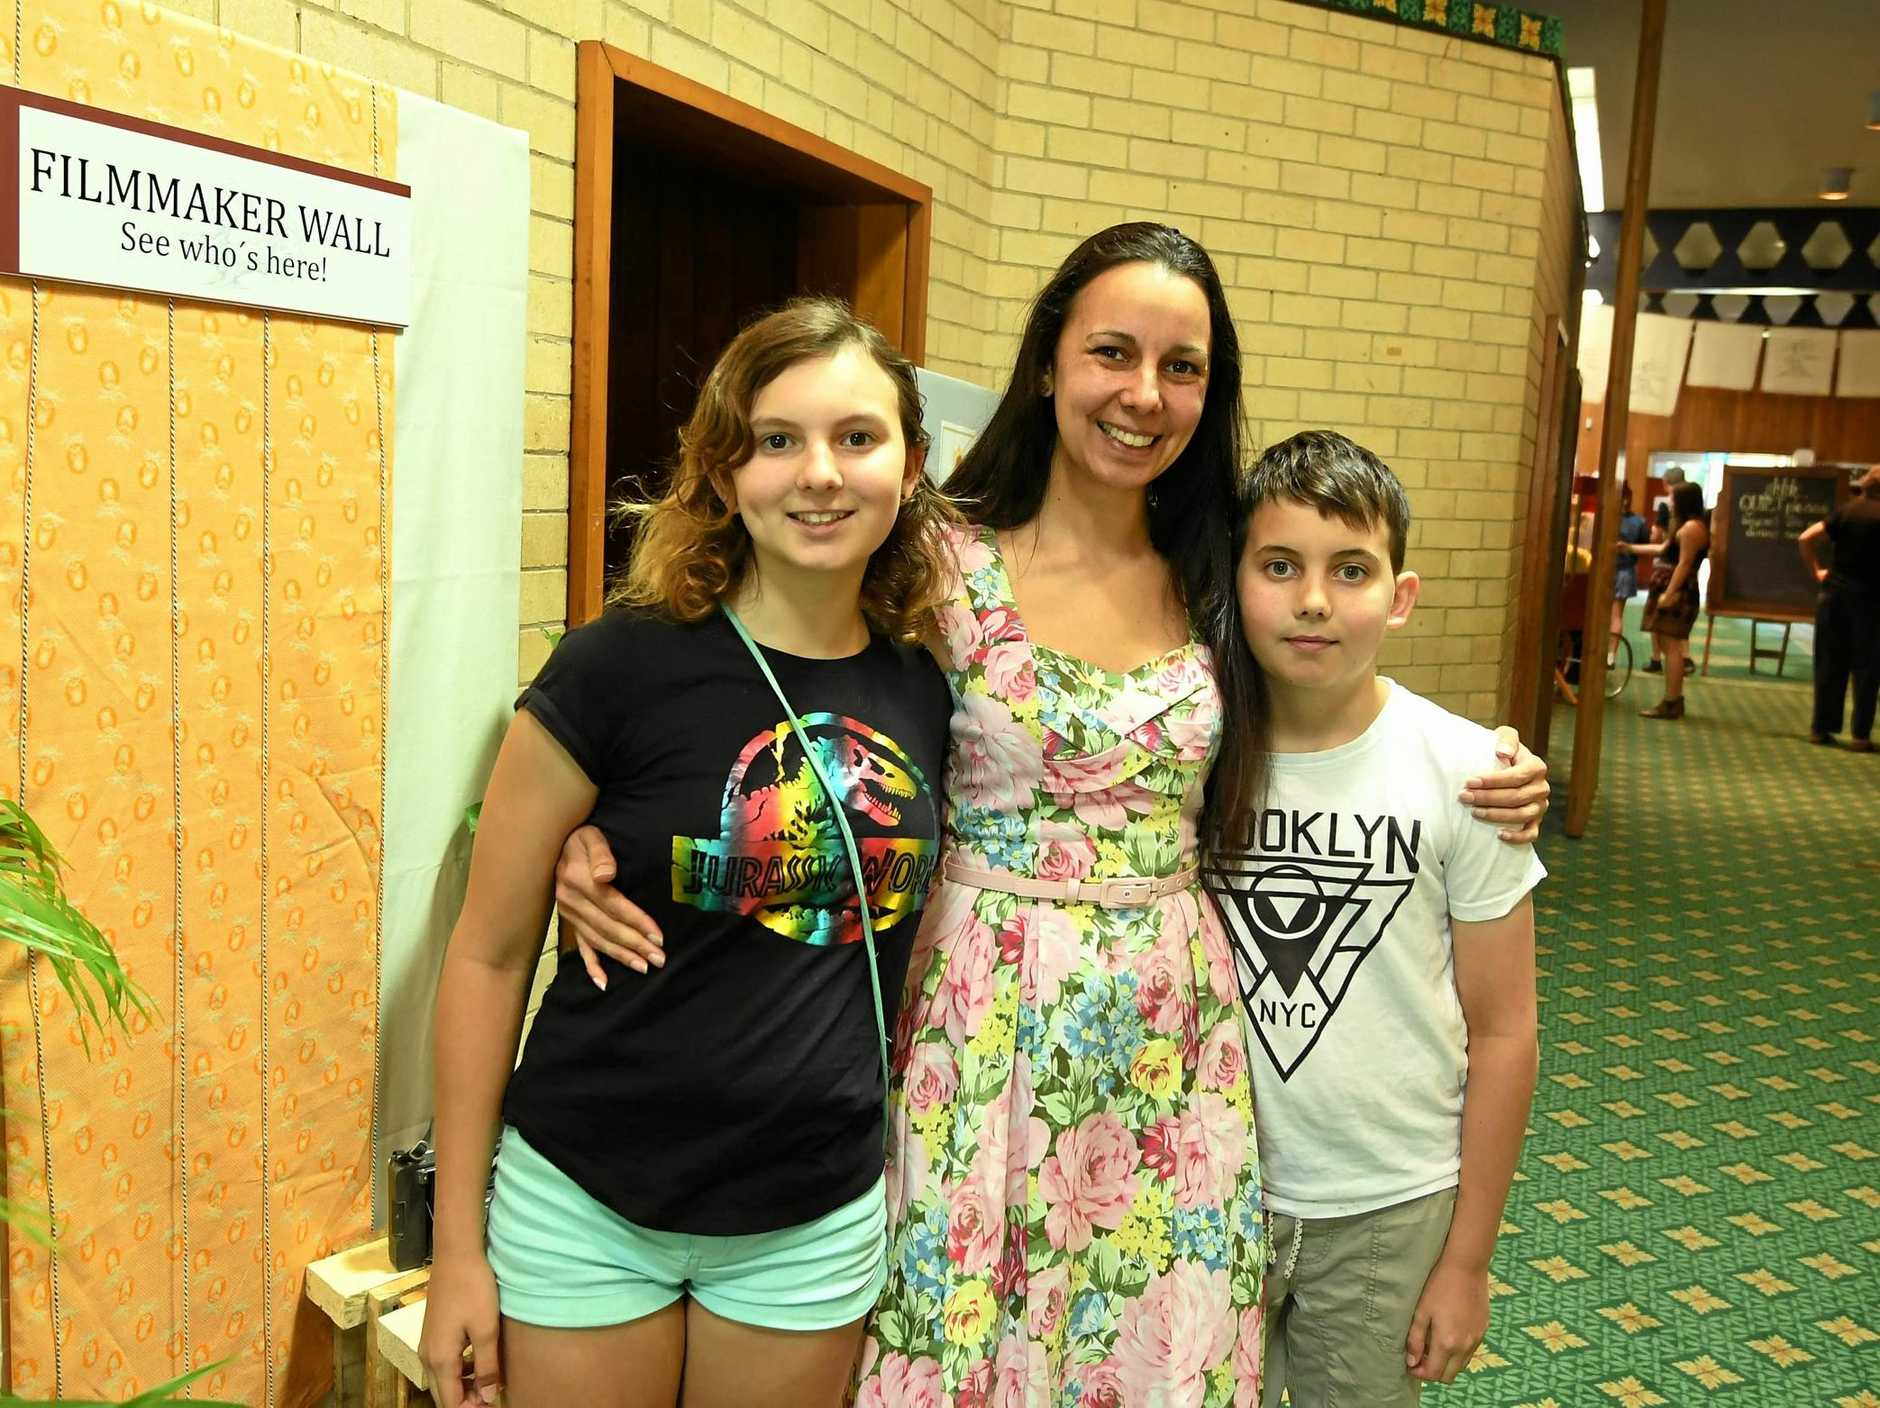 Heart of Gold Gympie Emma Wyn Belling, Aisha and Tyrone Belling.